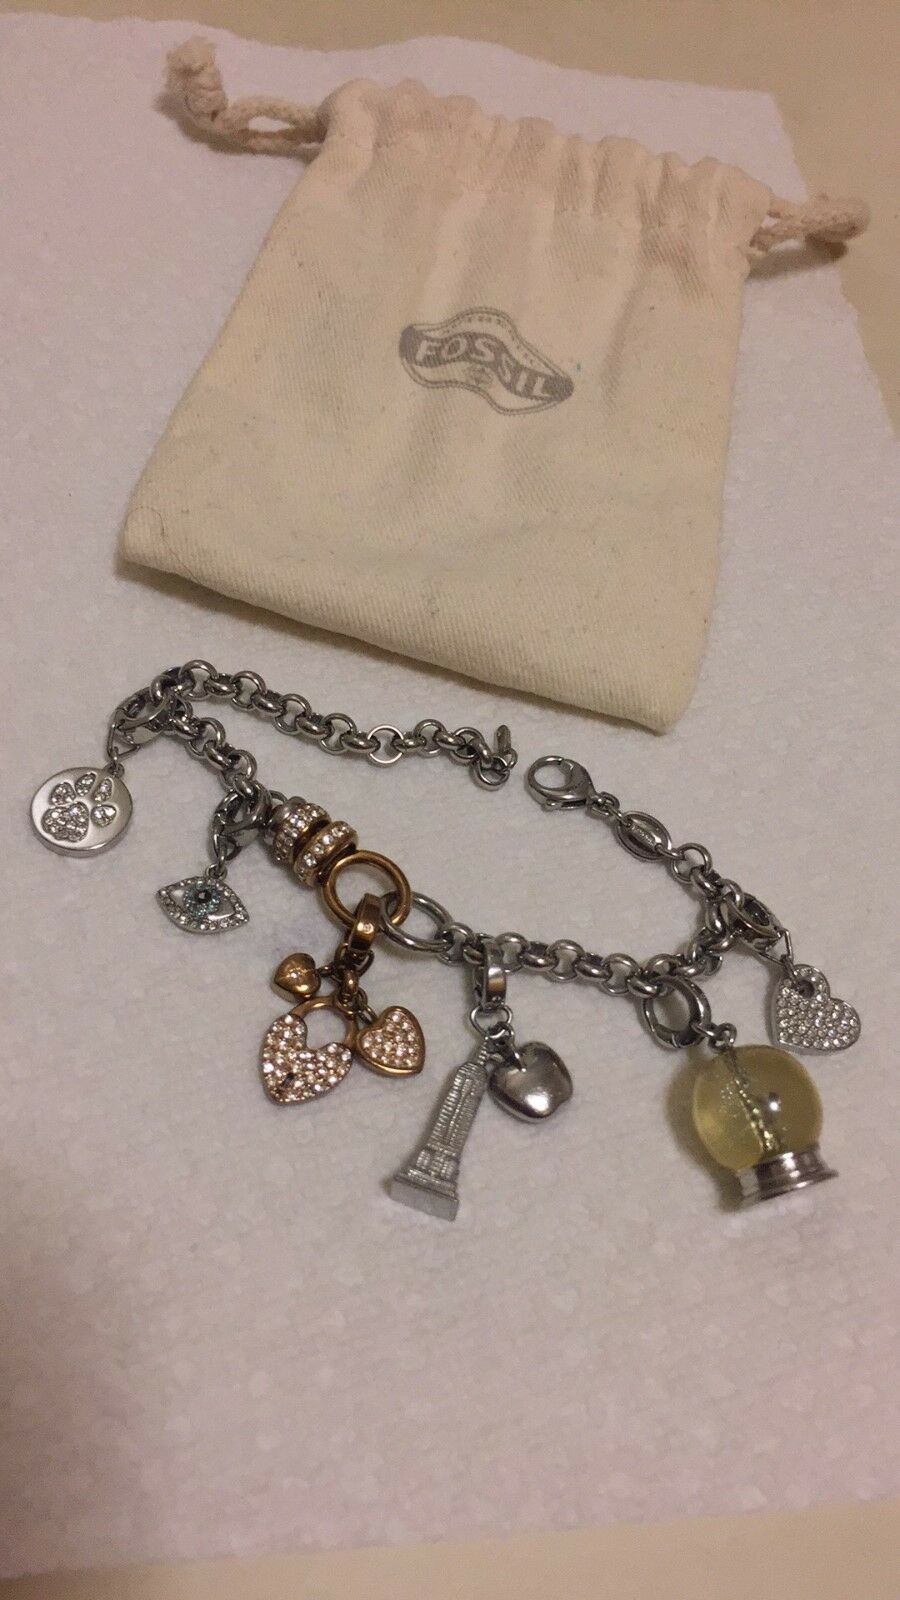 Fossil BRAND 4 charms Pre-Owned